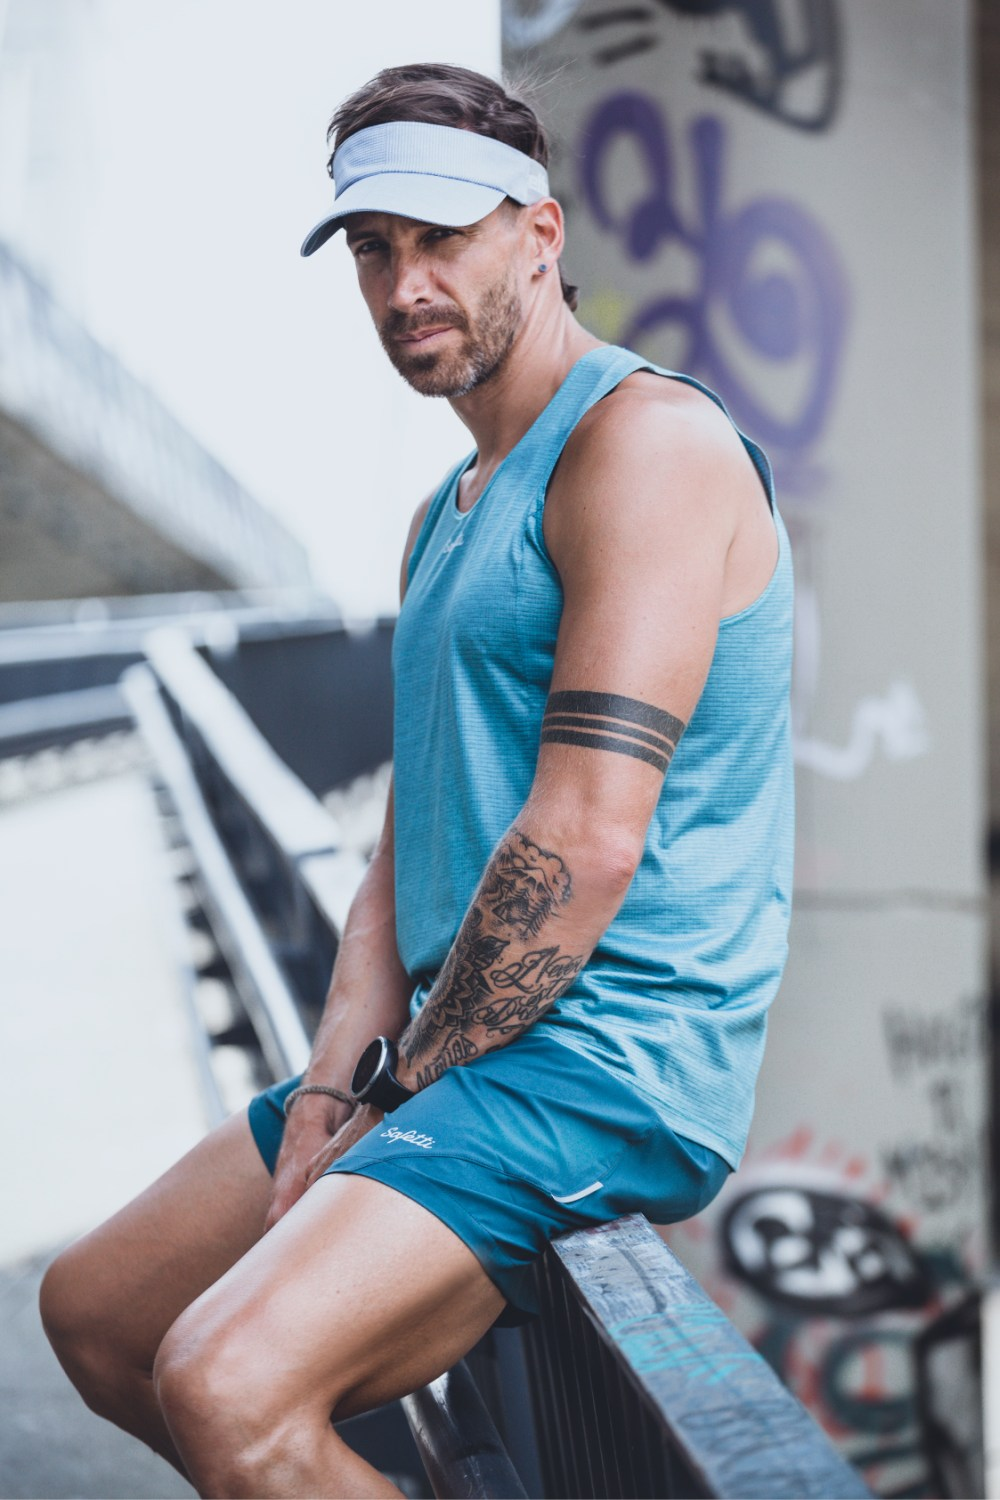 Sunset Running - Unbroken - Sleeveless Running Jersey. Men